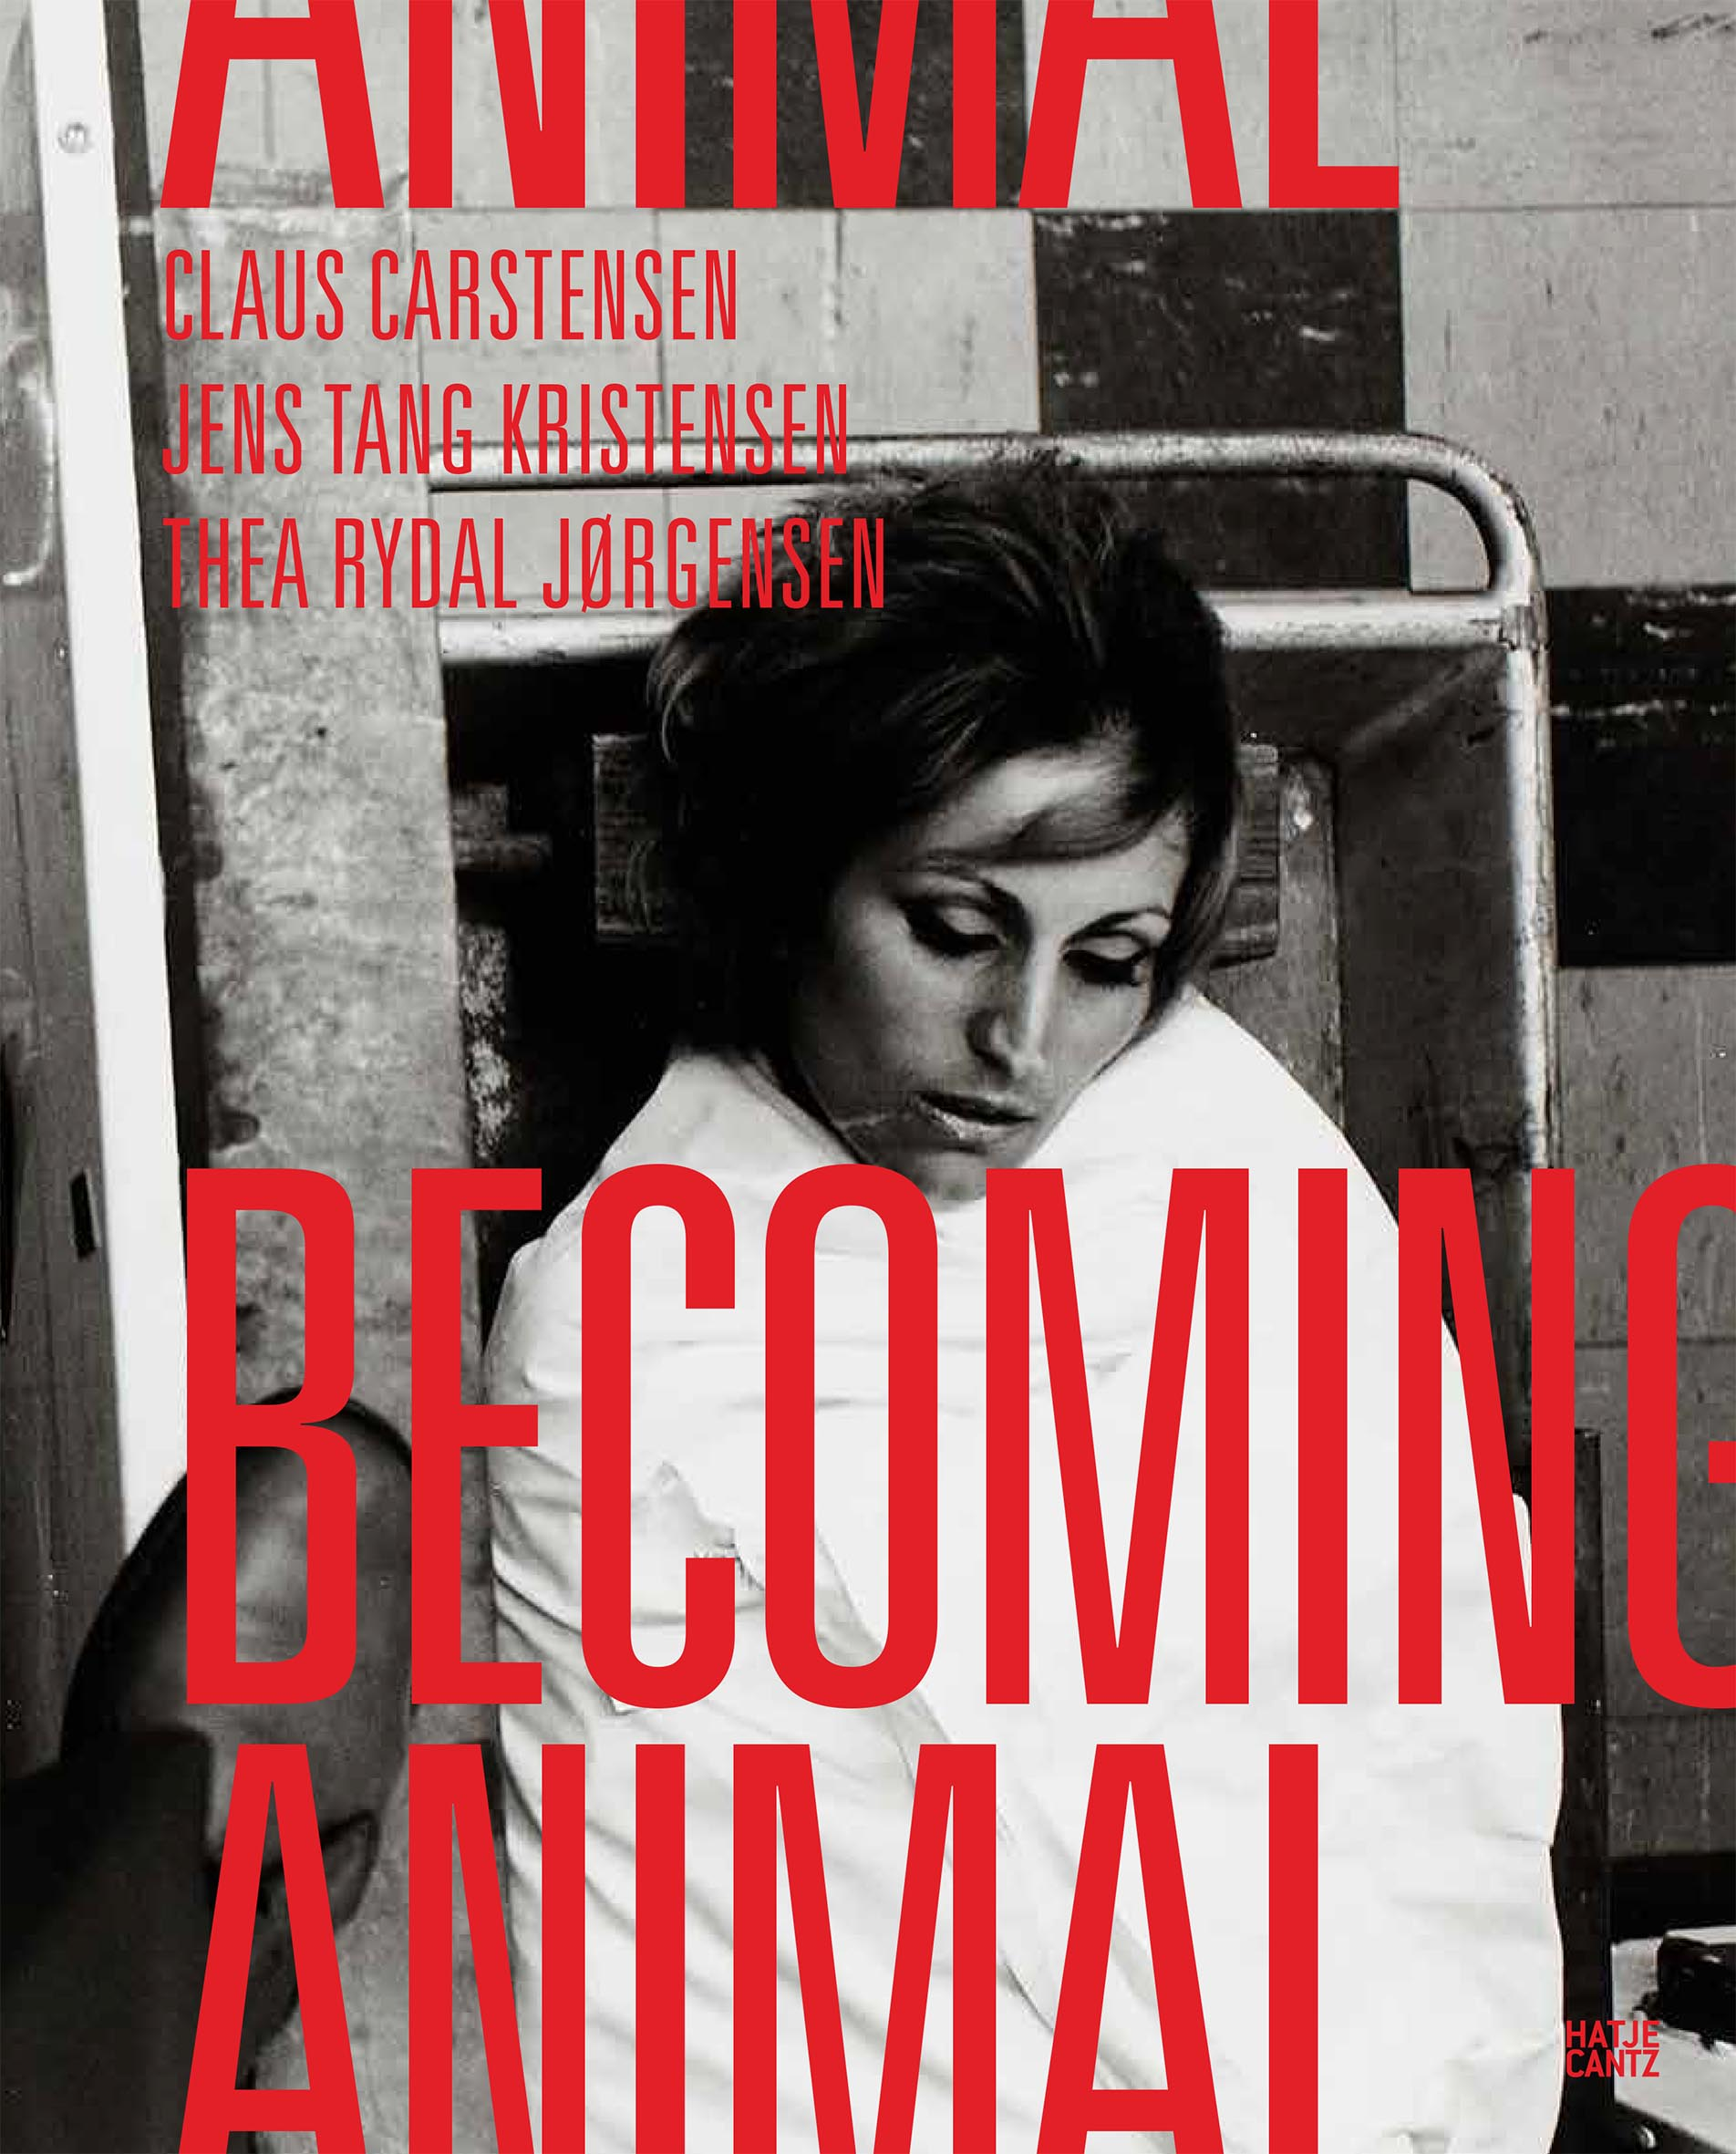 Becoming Animal © Cover Hatje Cantz